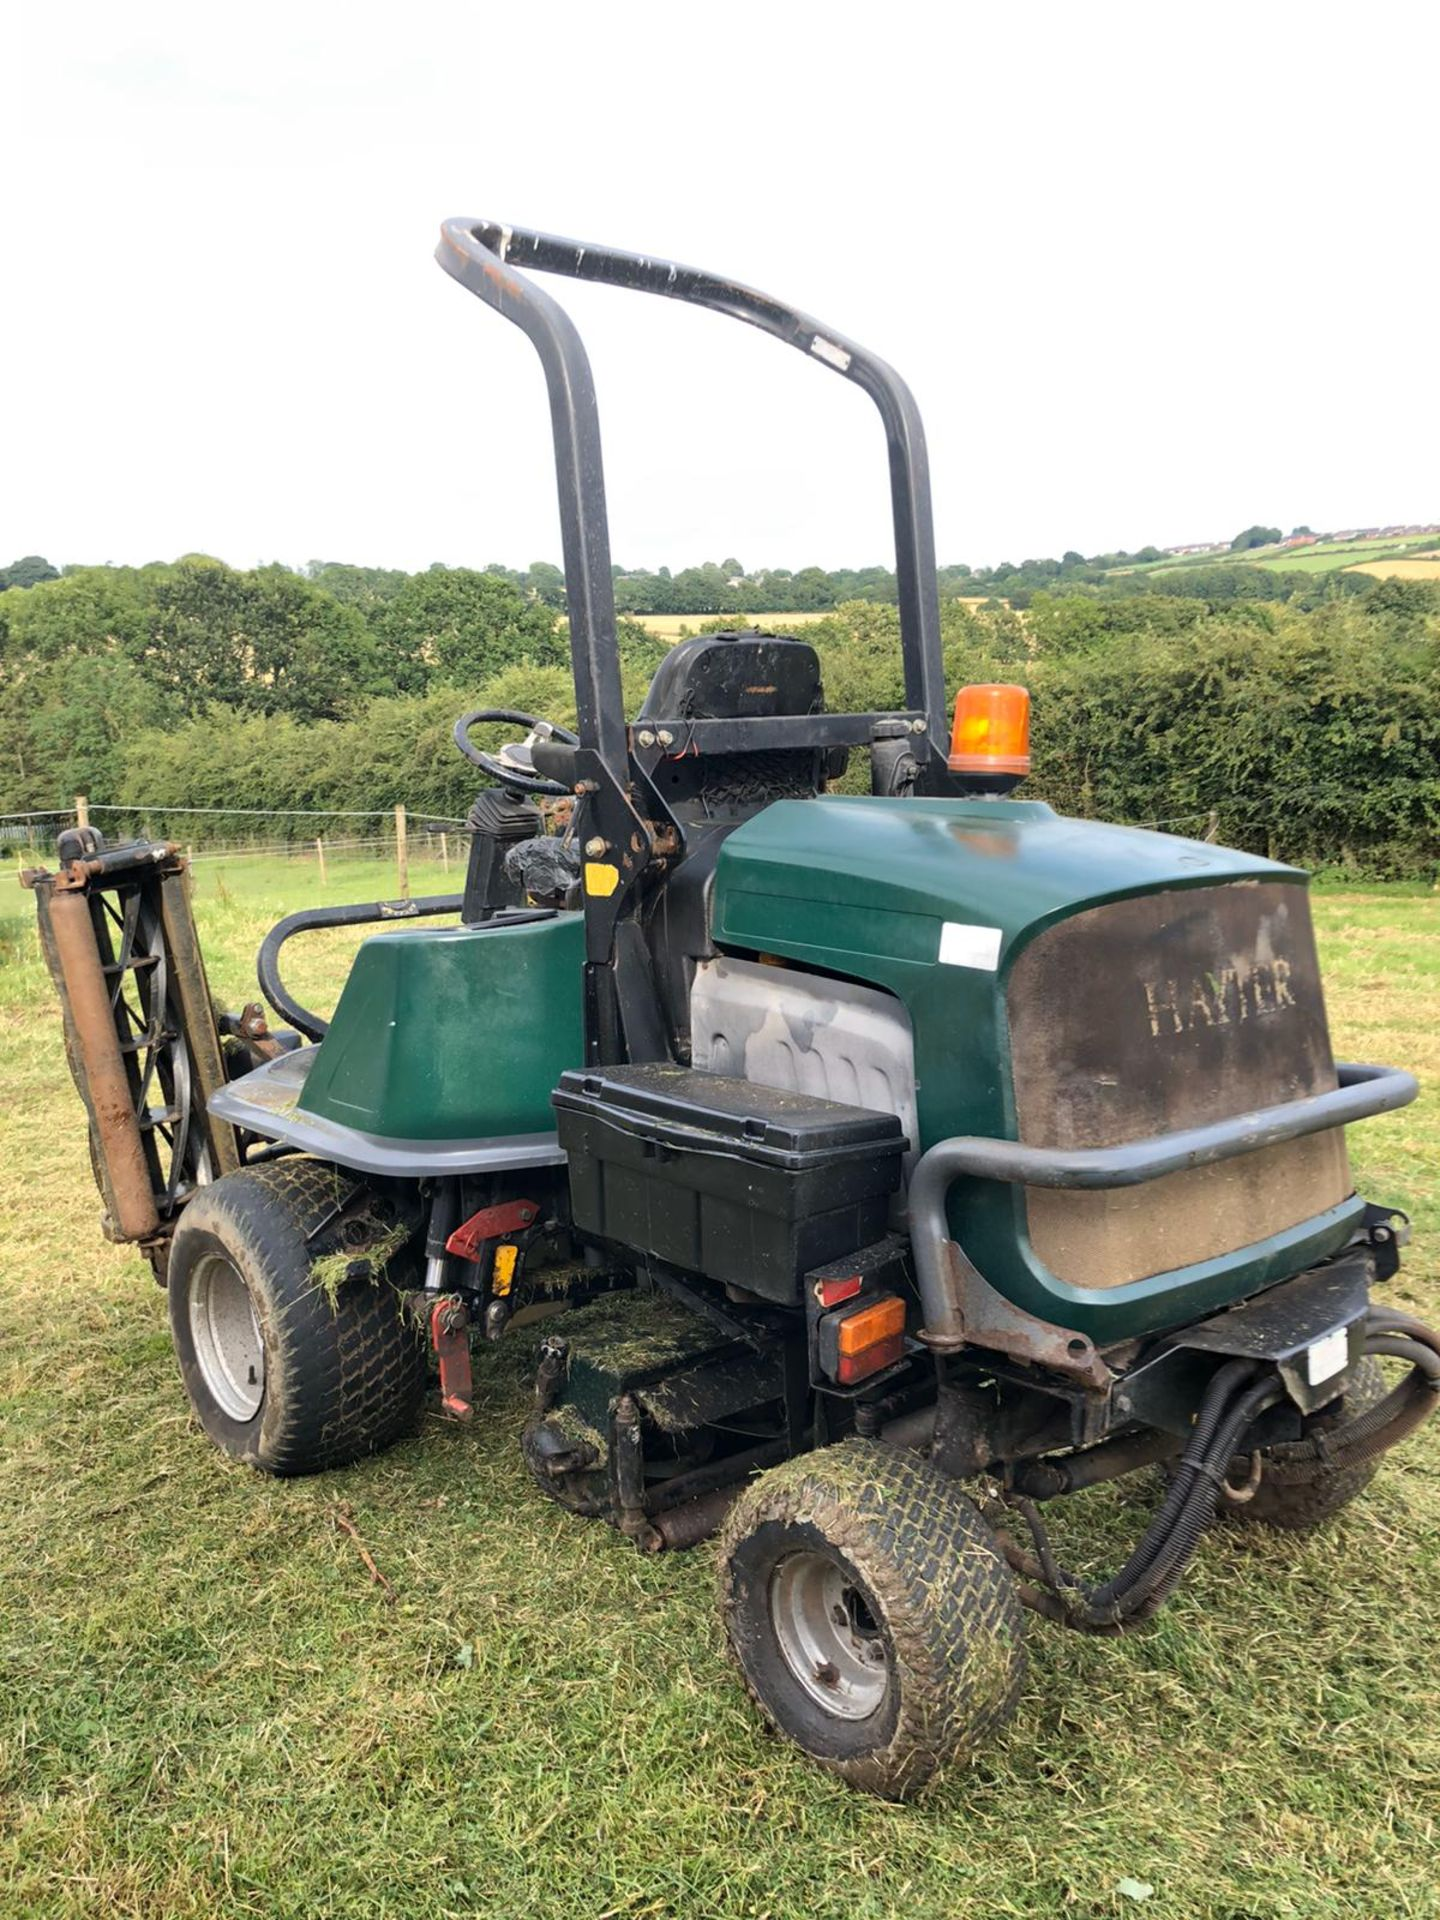 Lot 102 - HAYTER L324 RIDE ON LAWN MOWER, 4 WHEEL DRIVE, RUNS, WORKS AND CUTS *PLUS VAT*